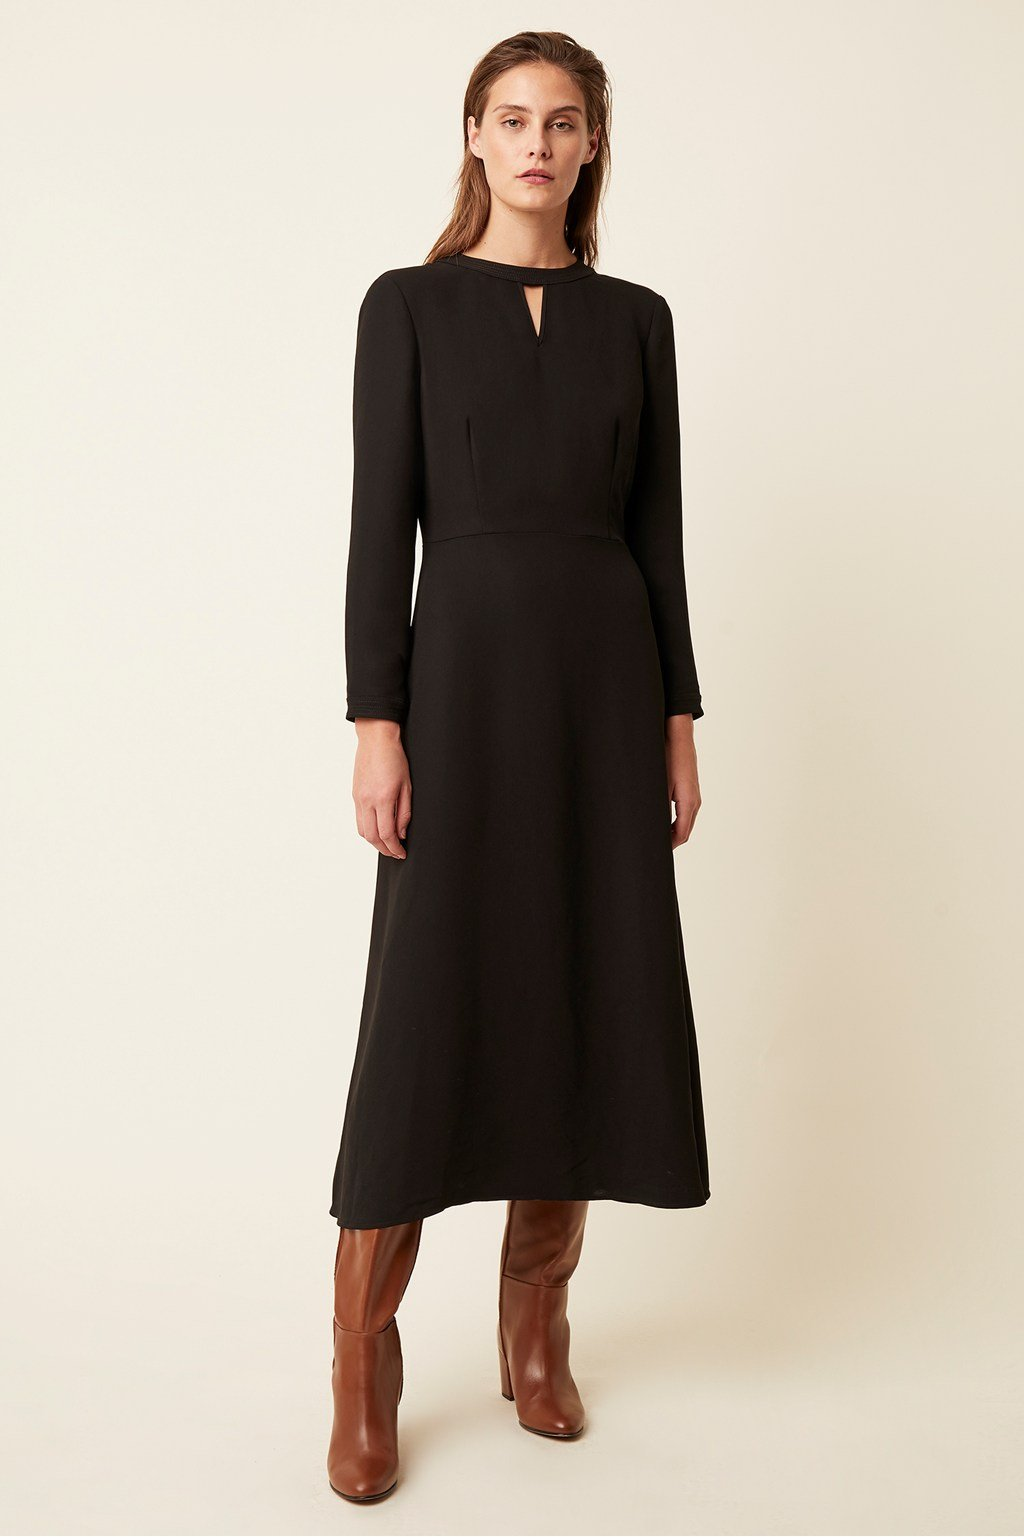 Great Plain Tailored Black Dress - HALF PRICE